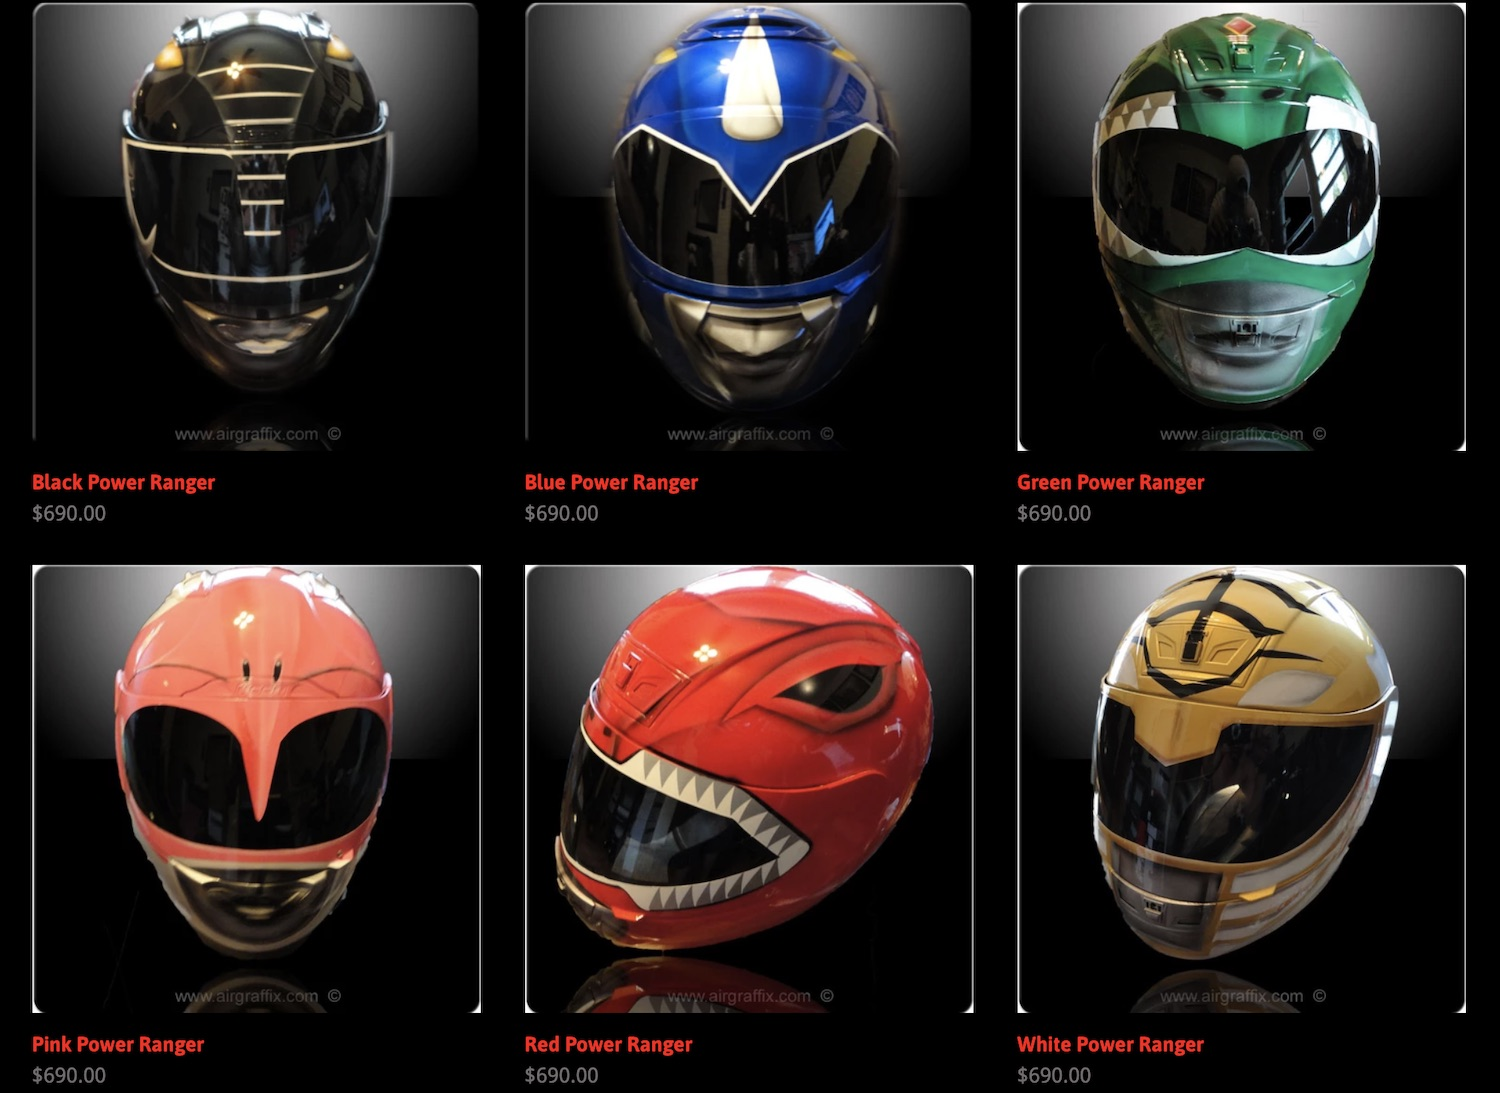 Power Rangers Helmets from Air Graffix